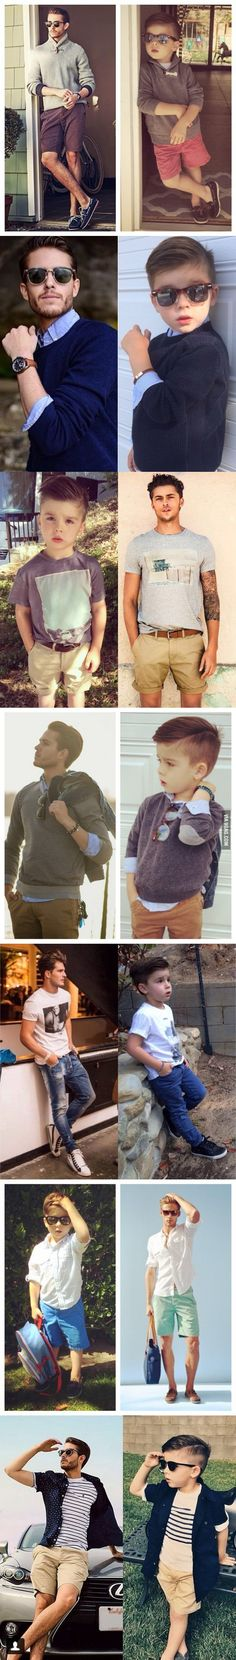 A Mother Dresses Up and Poses Her 4 Year Old Son Like a Male Fashion Model